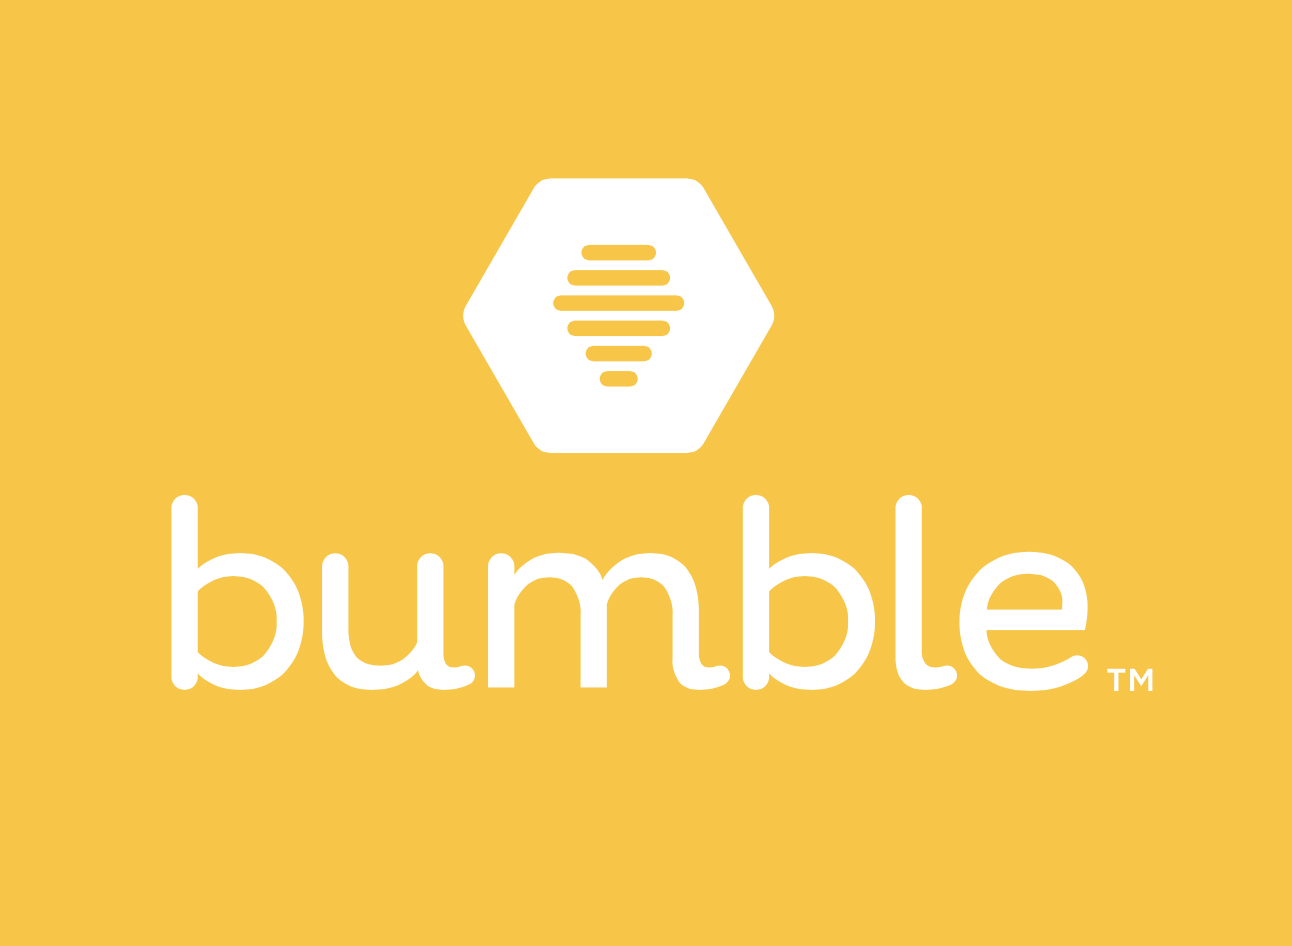 Online dating openers bumble